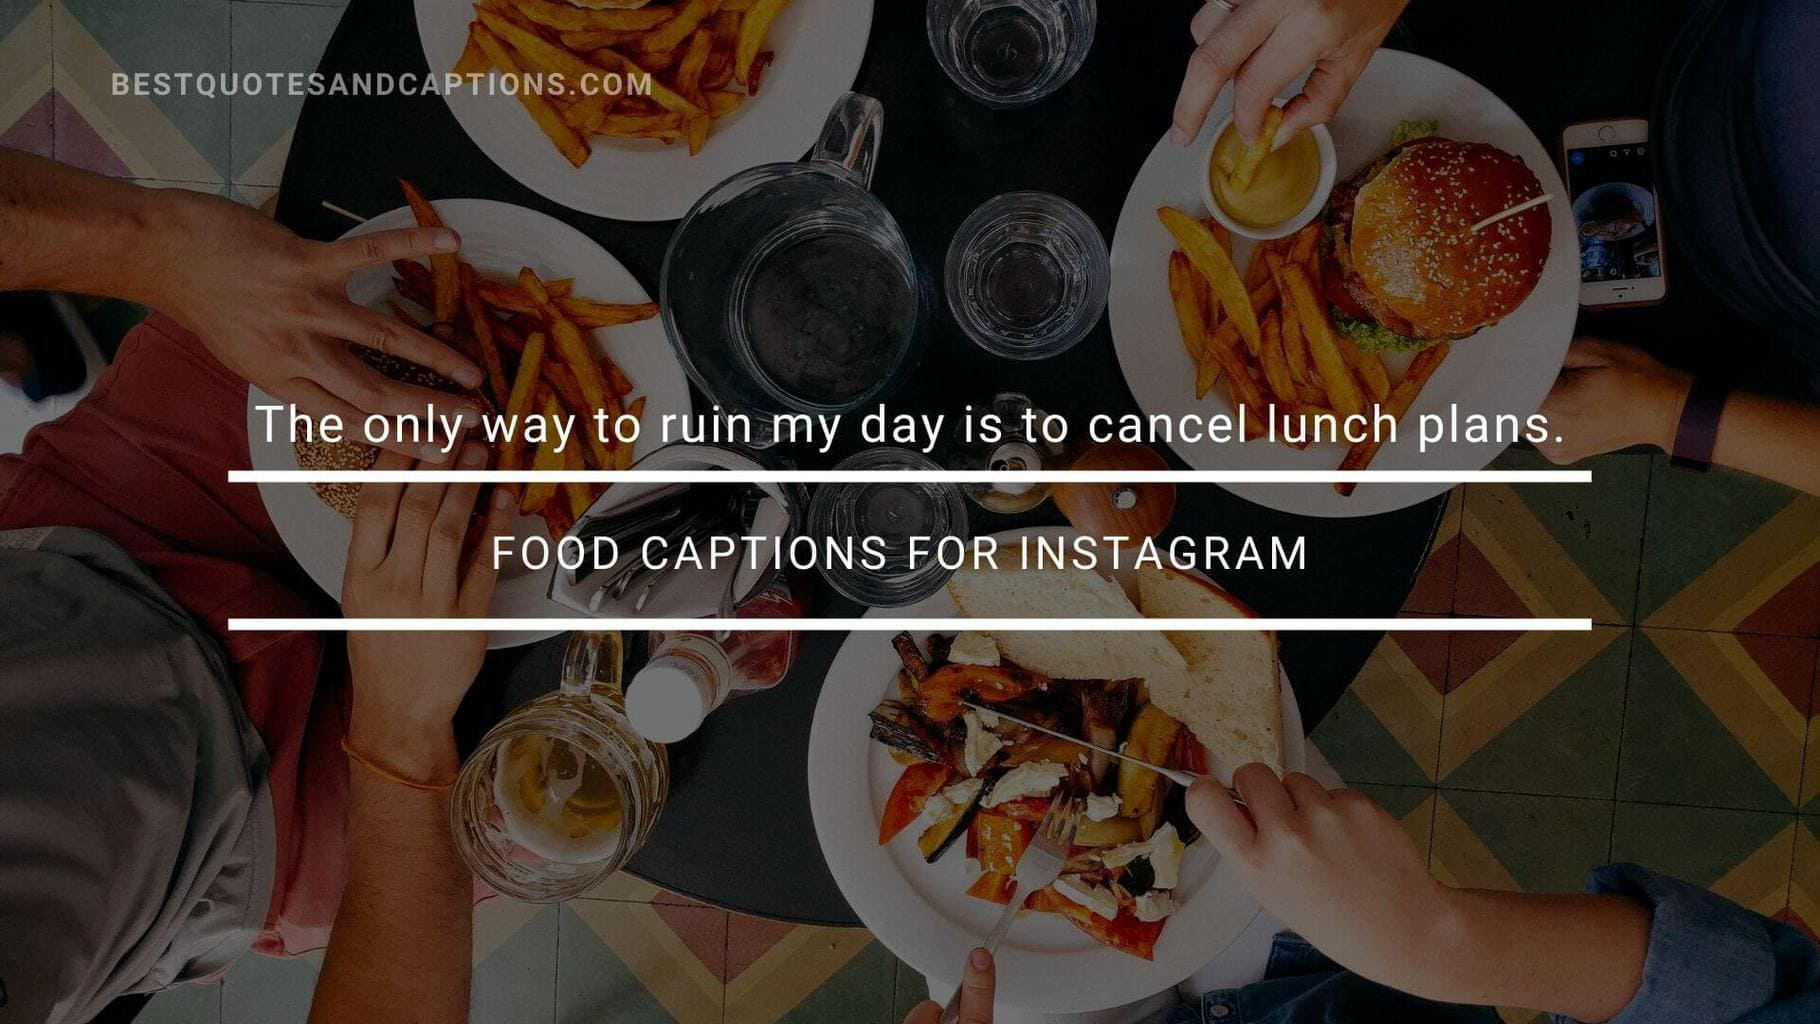 Lunch captions for Instagram